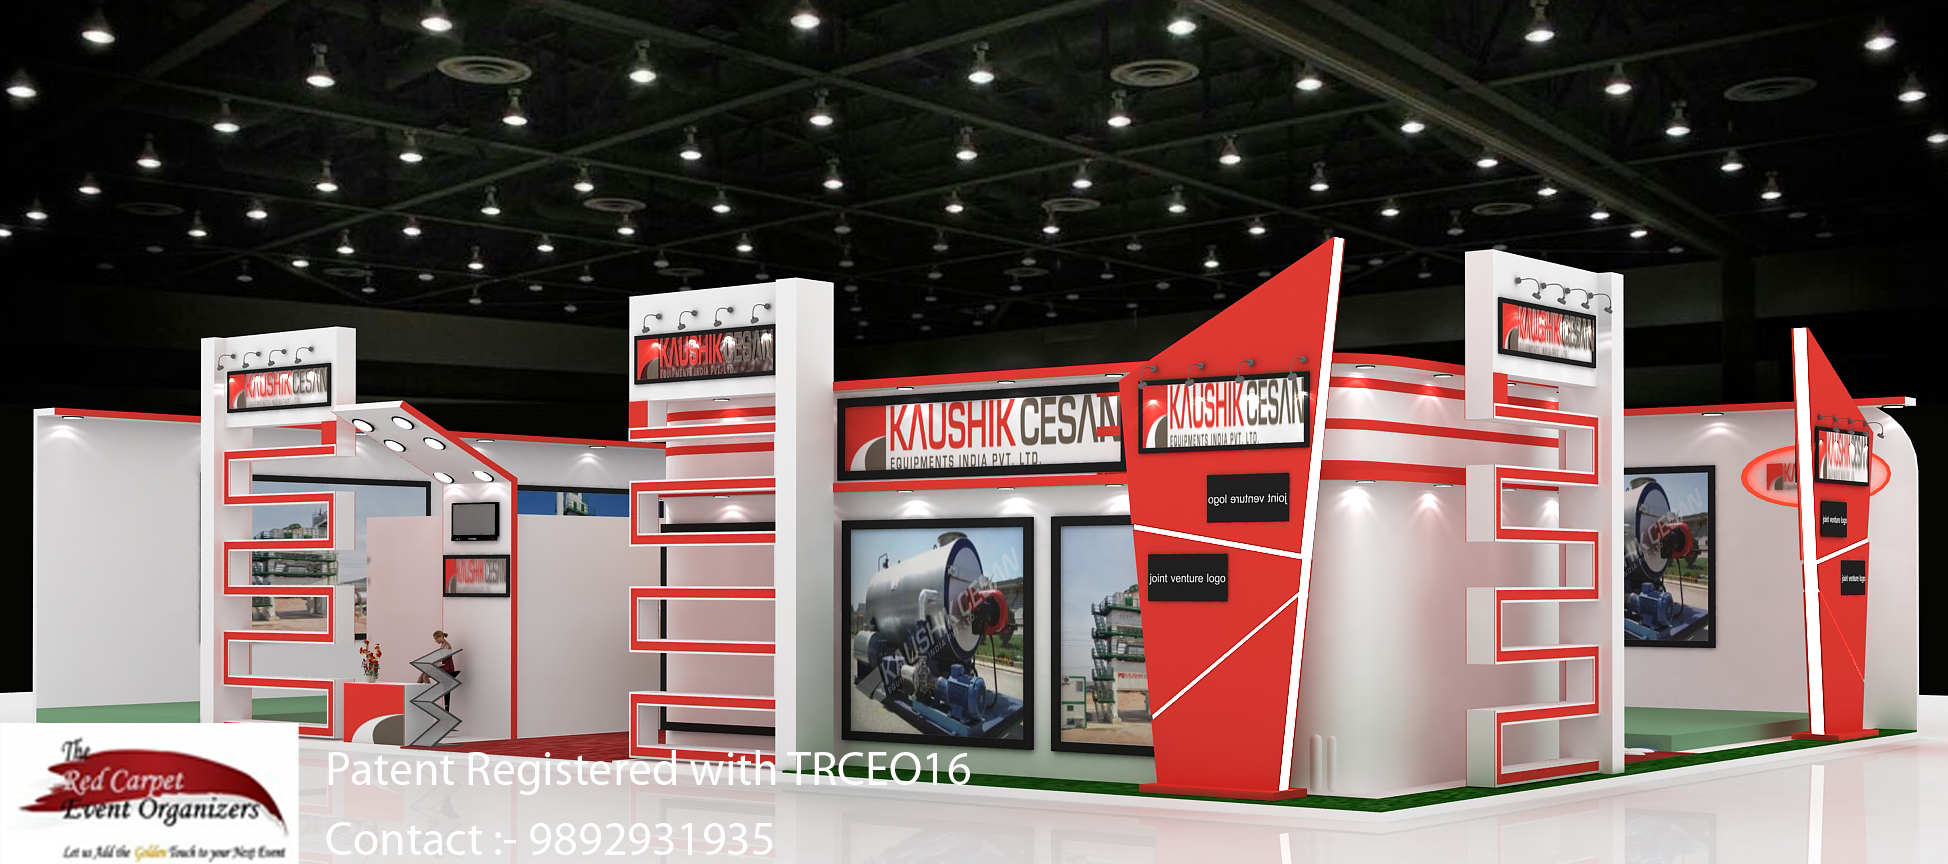 4_stall designs left view  B C India Stall Design & Fabrication by The Red Carpet Event Organizers c